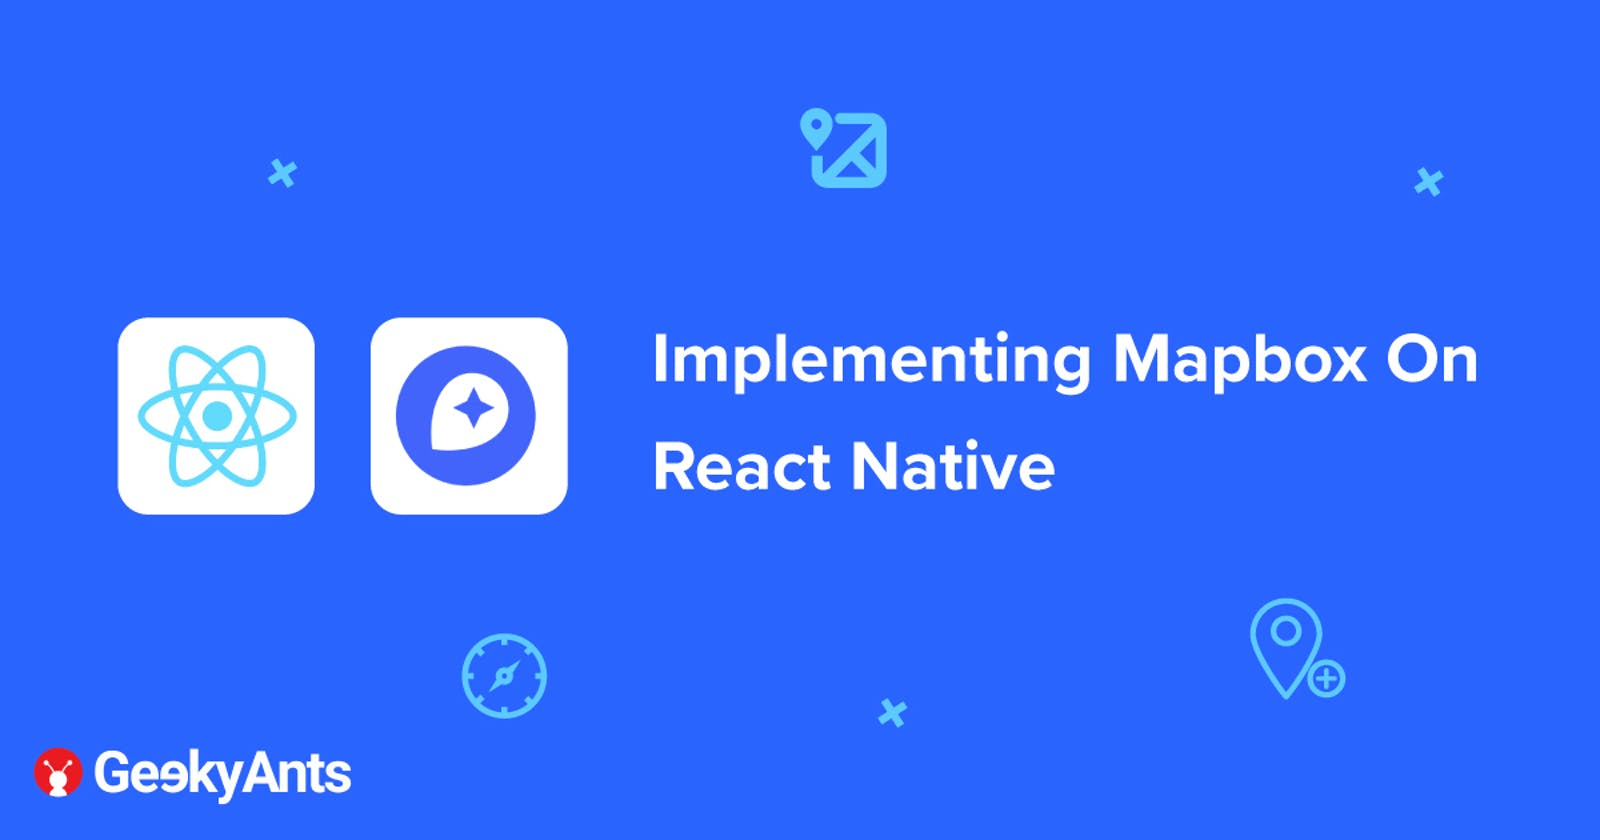 Implementing Mapbox On React Native